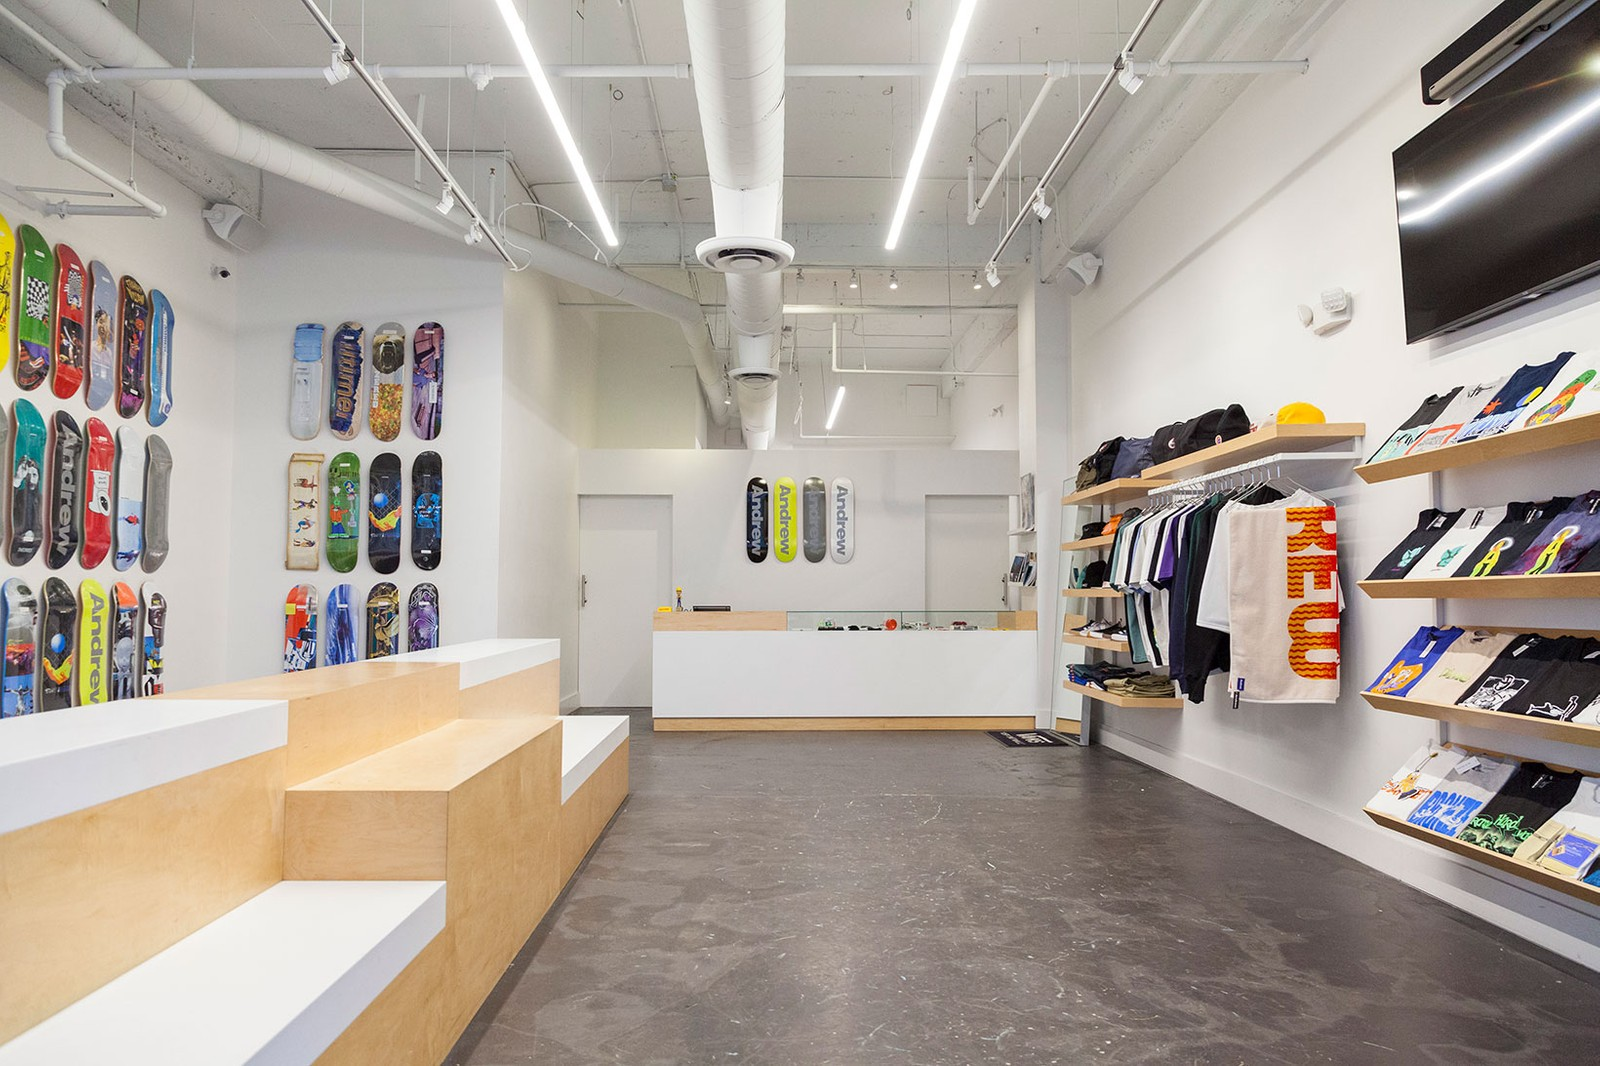 How This Shop Is Driving Miami's Skate Culture Forward Virgil Abloh Angelo Baque AWAKE Andrew Downtown AllTimers Versailles Cafe Miami Art Basel